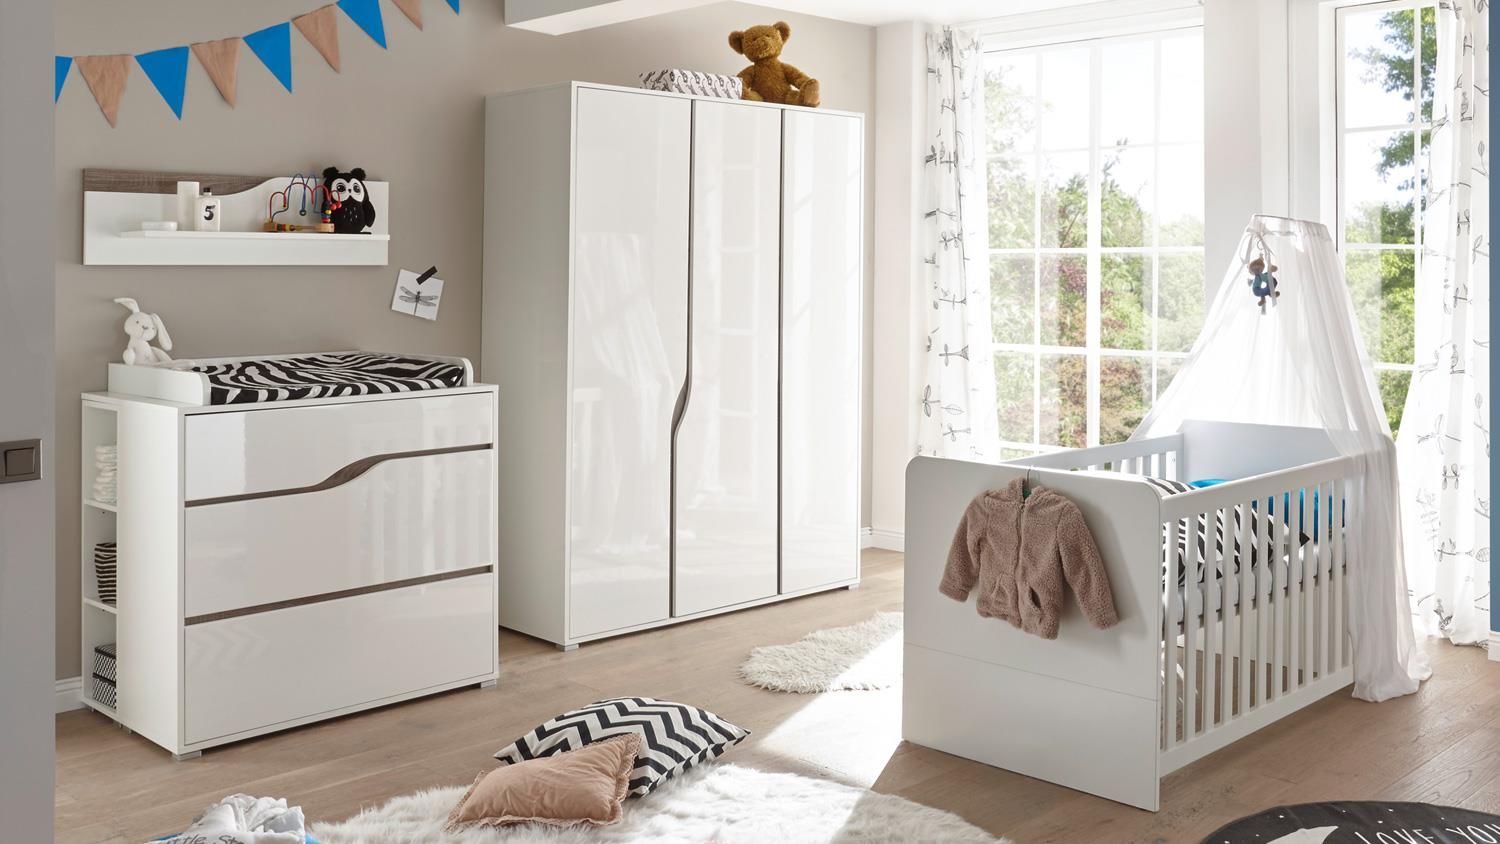 babyzimmer 1 marra 3 teilig mdf wei hochglanz eiche sonoma tr ffel. Black Bedroom Furniture Sets. Home Design Ideas